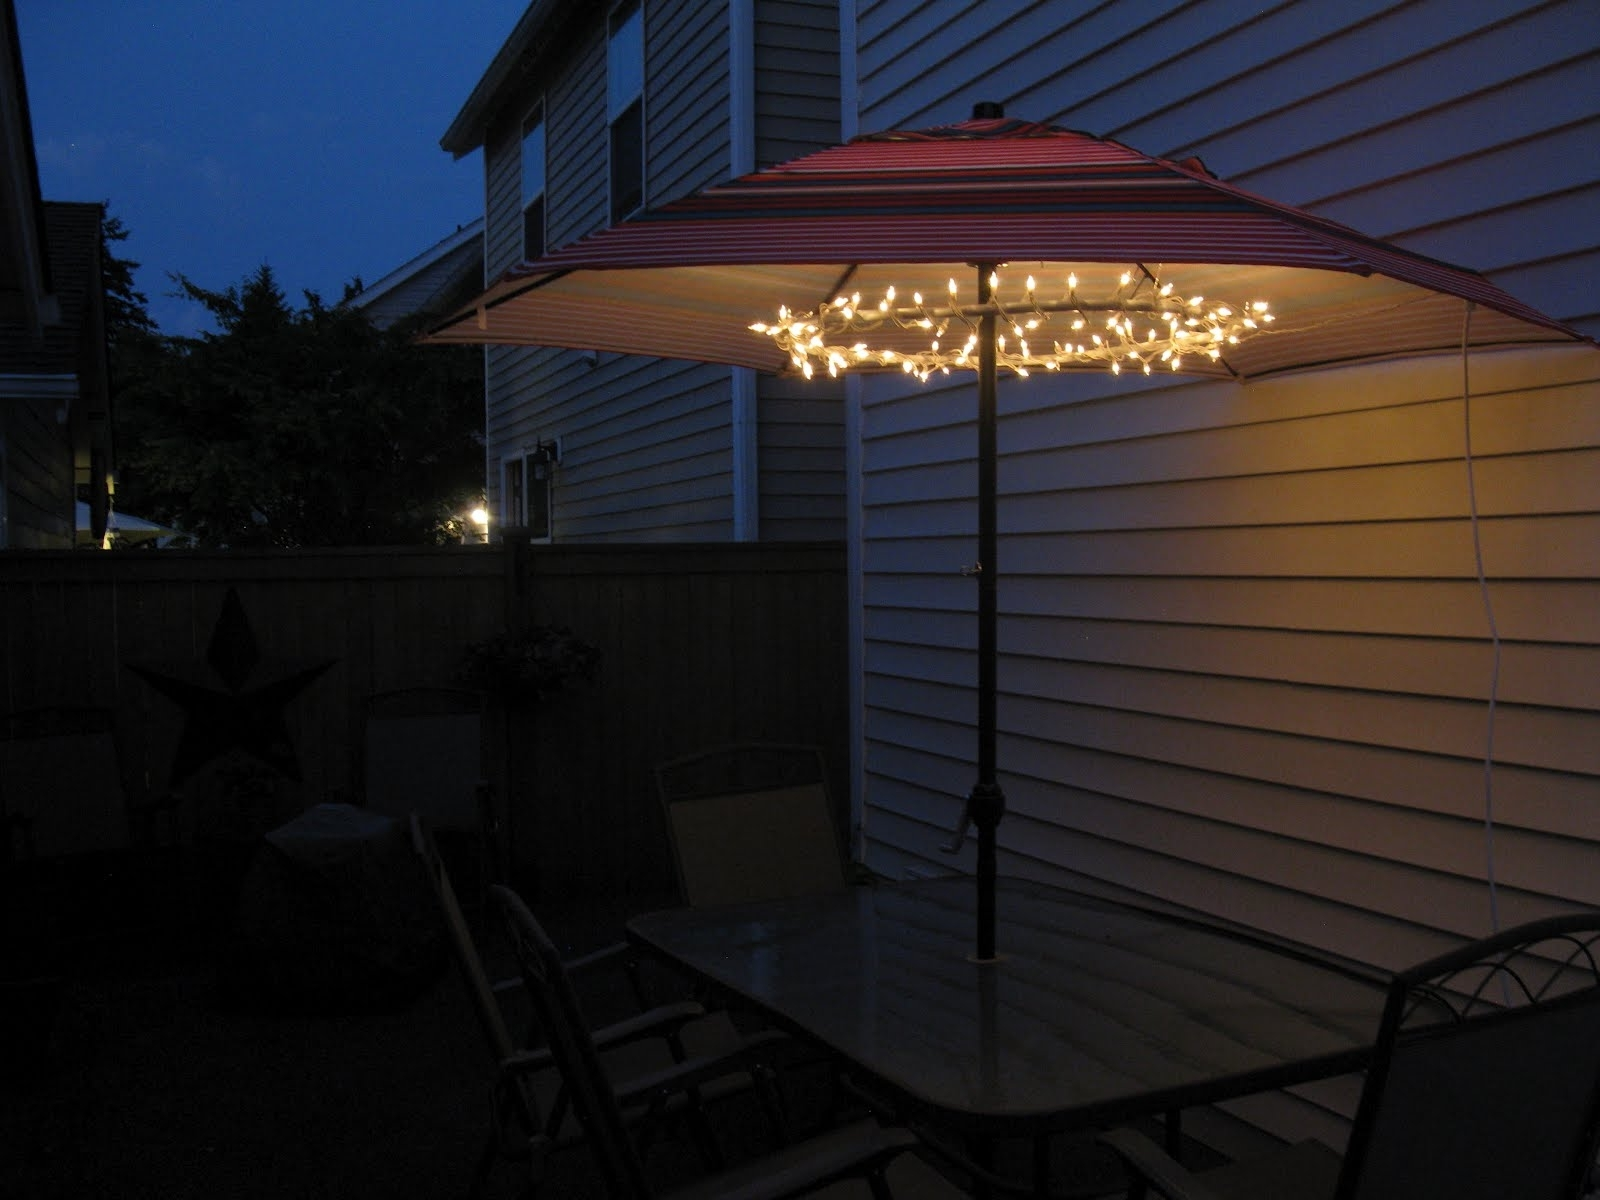 2019 Great Patio Umbrellas With Lights Patio Umbrella Lights For The Pertaining To Outdoor Umbrella Lanterns (View 5 of 20)